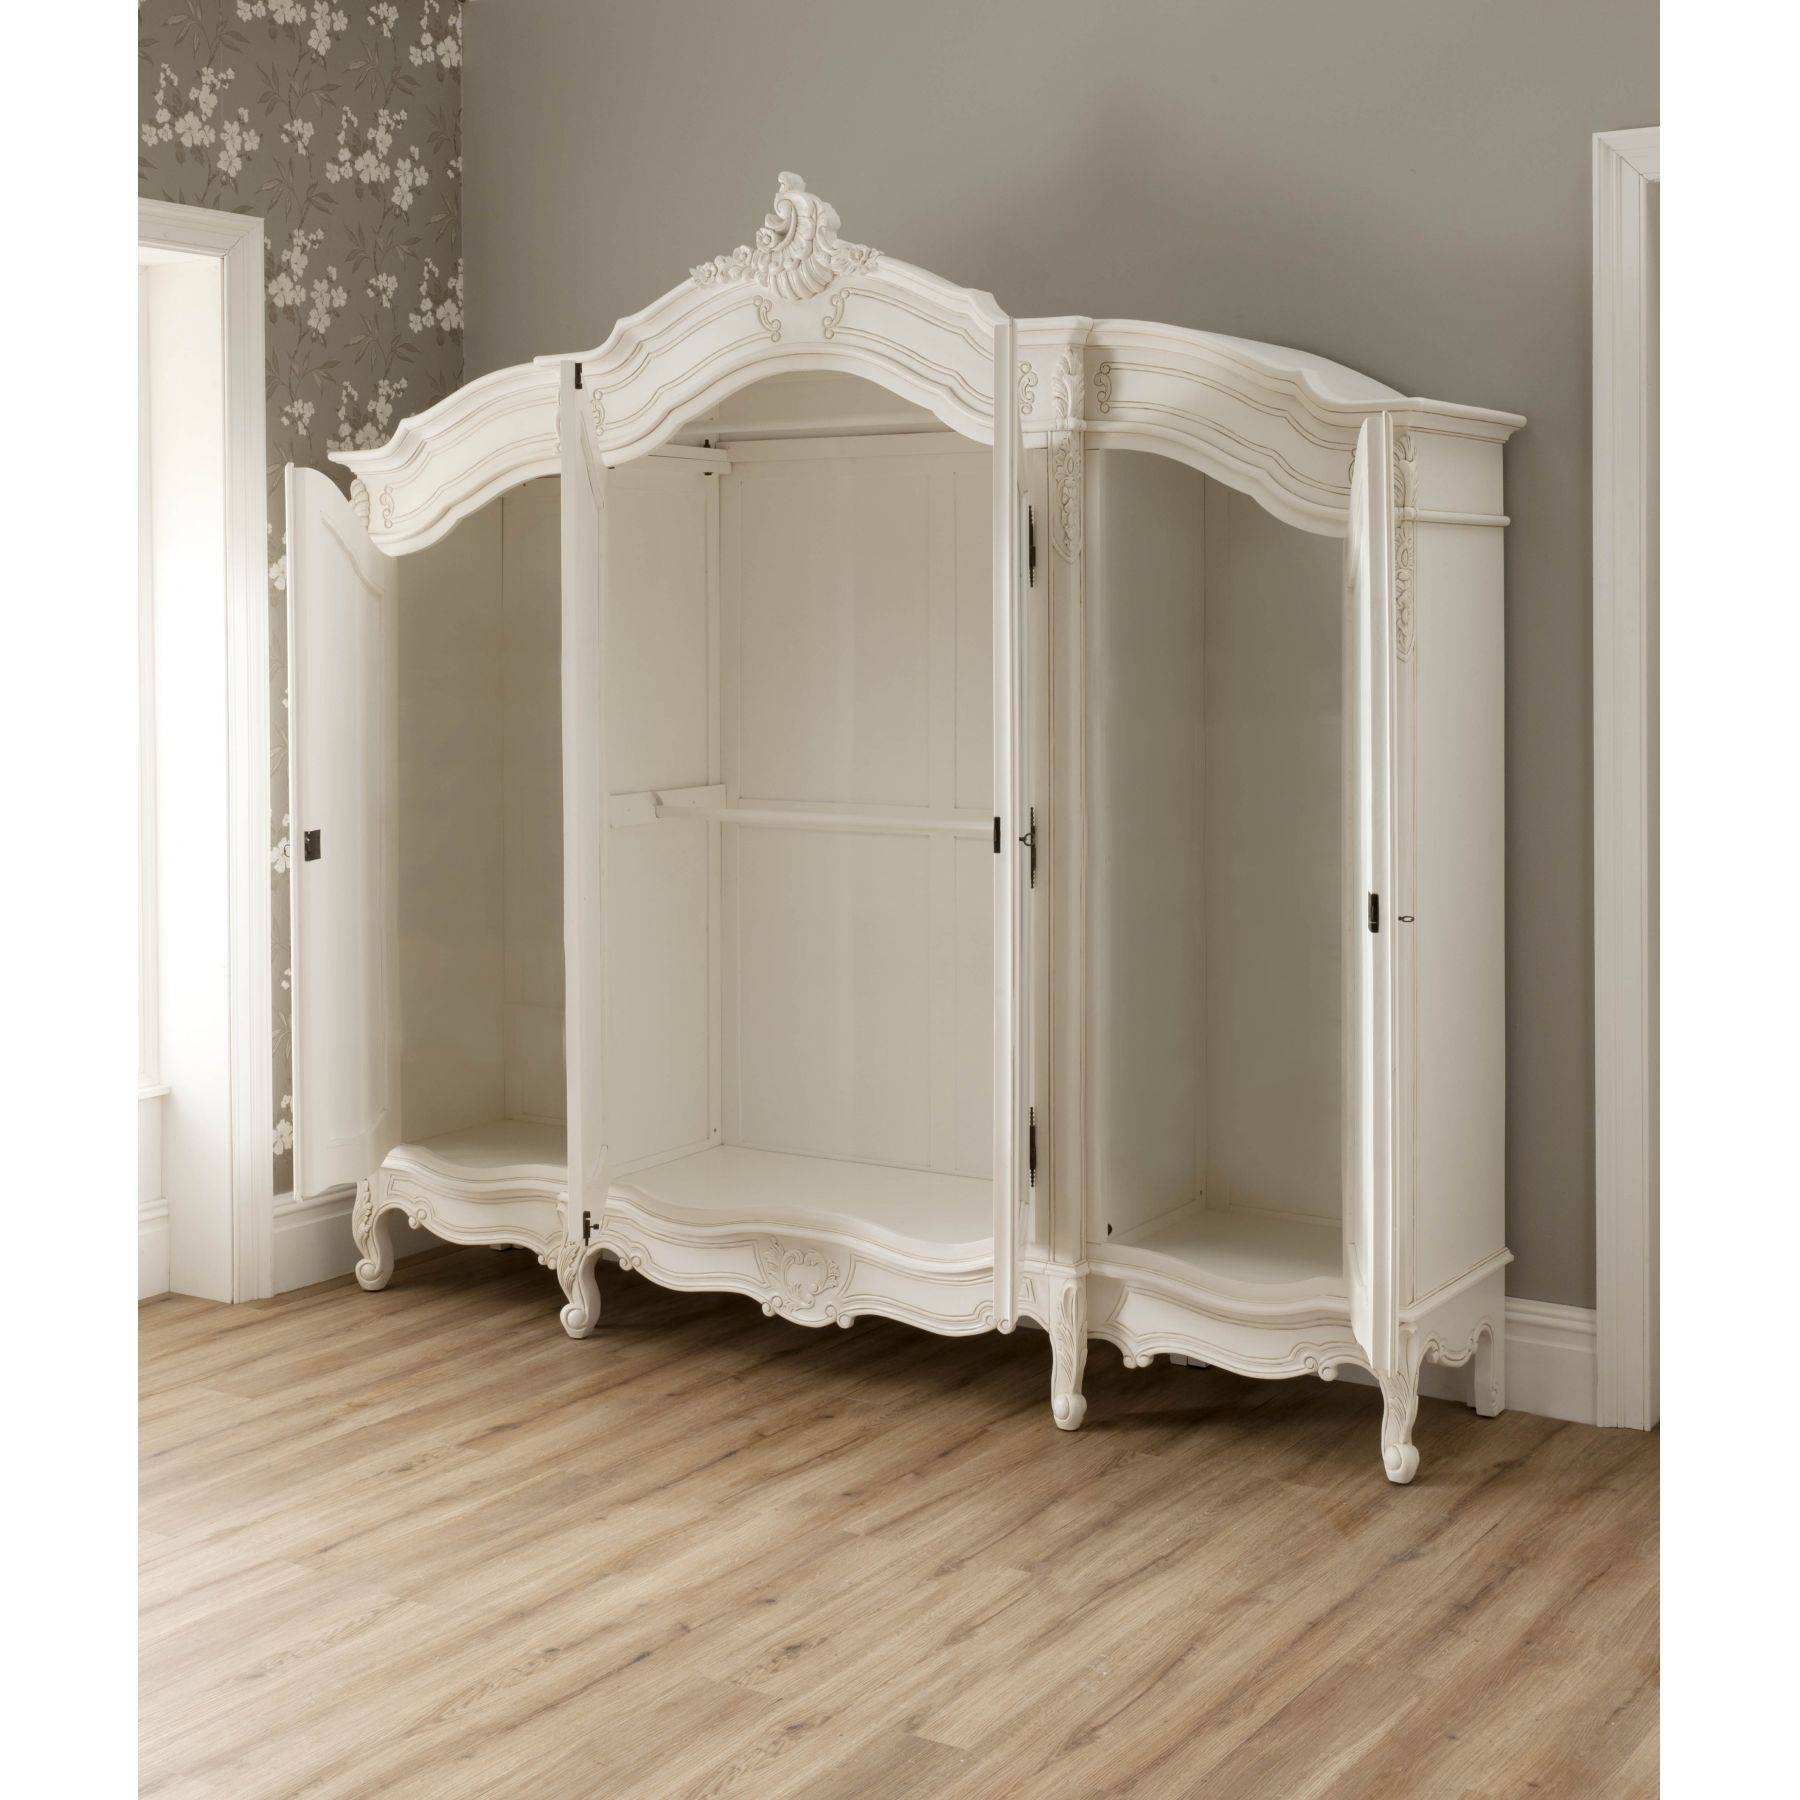 Rochelle 4 Door Antique French Wardrobe for White French Armoire Wardrobes (Image 14 of 15)